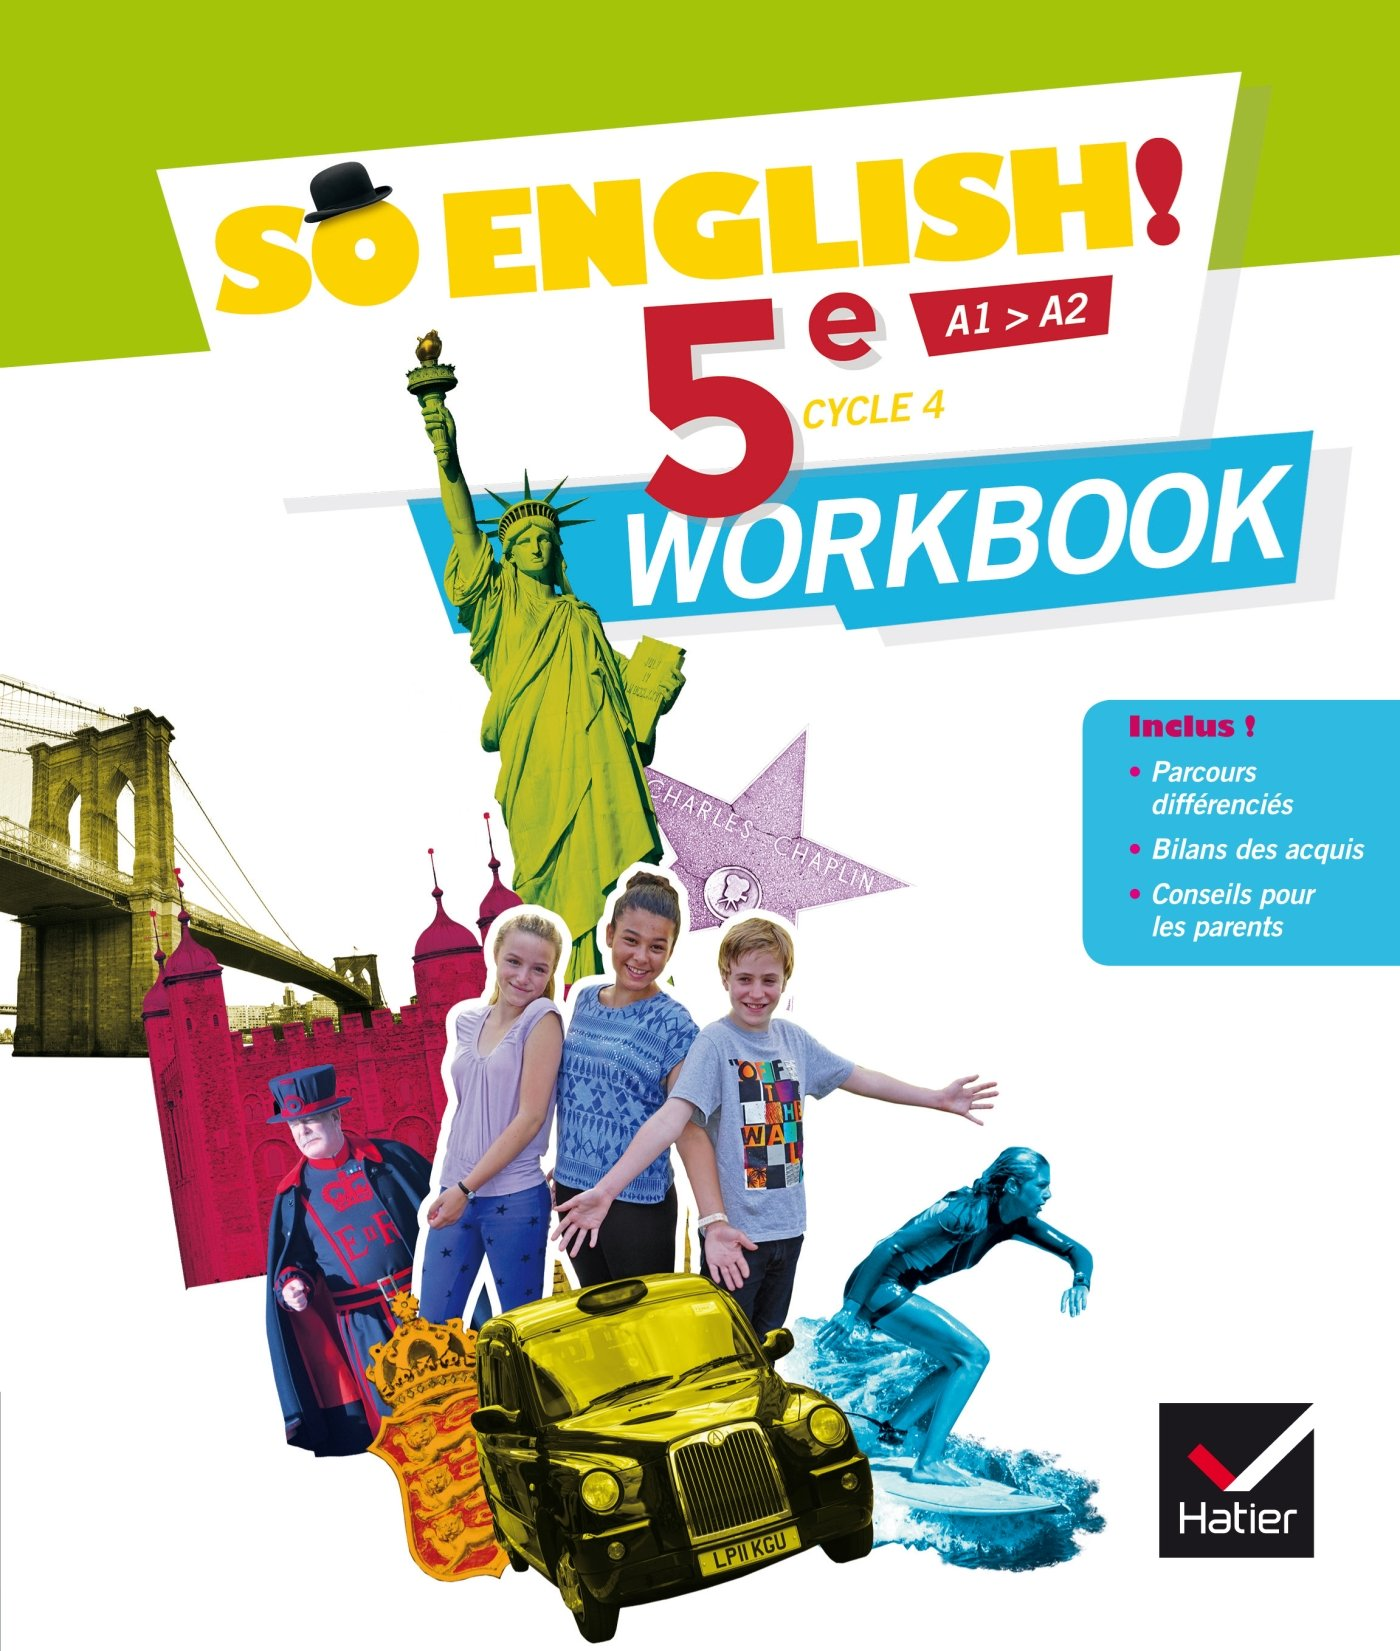 So English! - Anglais 5e Éd. 2017 - Workbook Broché – 10 mai 2017 Evelyne Ledru-Germain Célia Dagois Elisabeth Jardon Sylviane Rougier